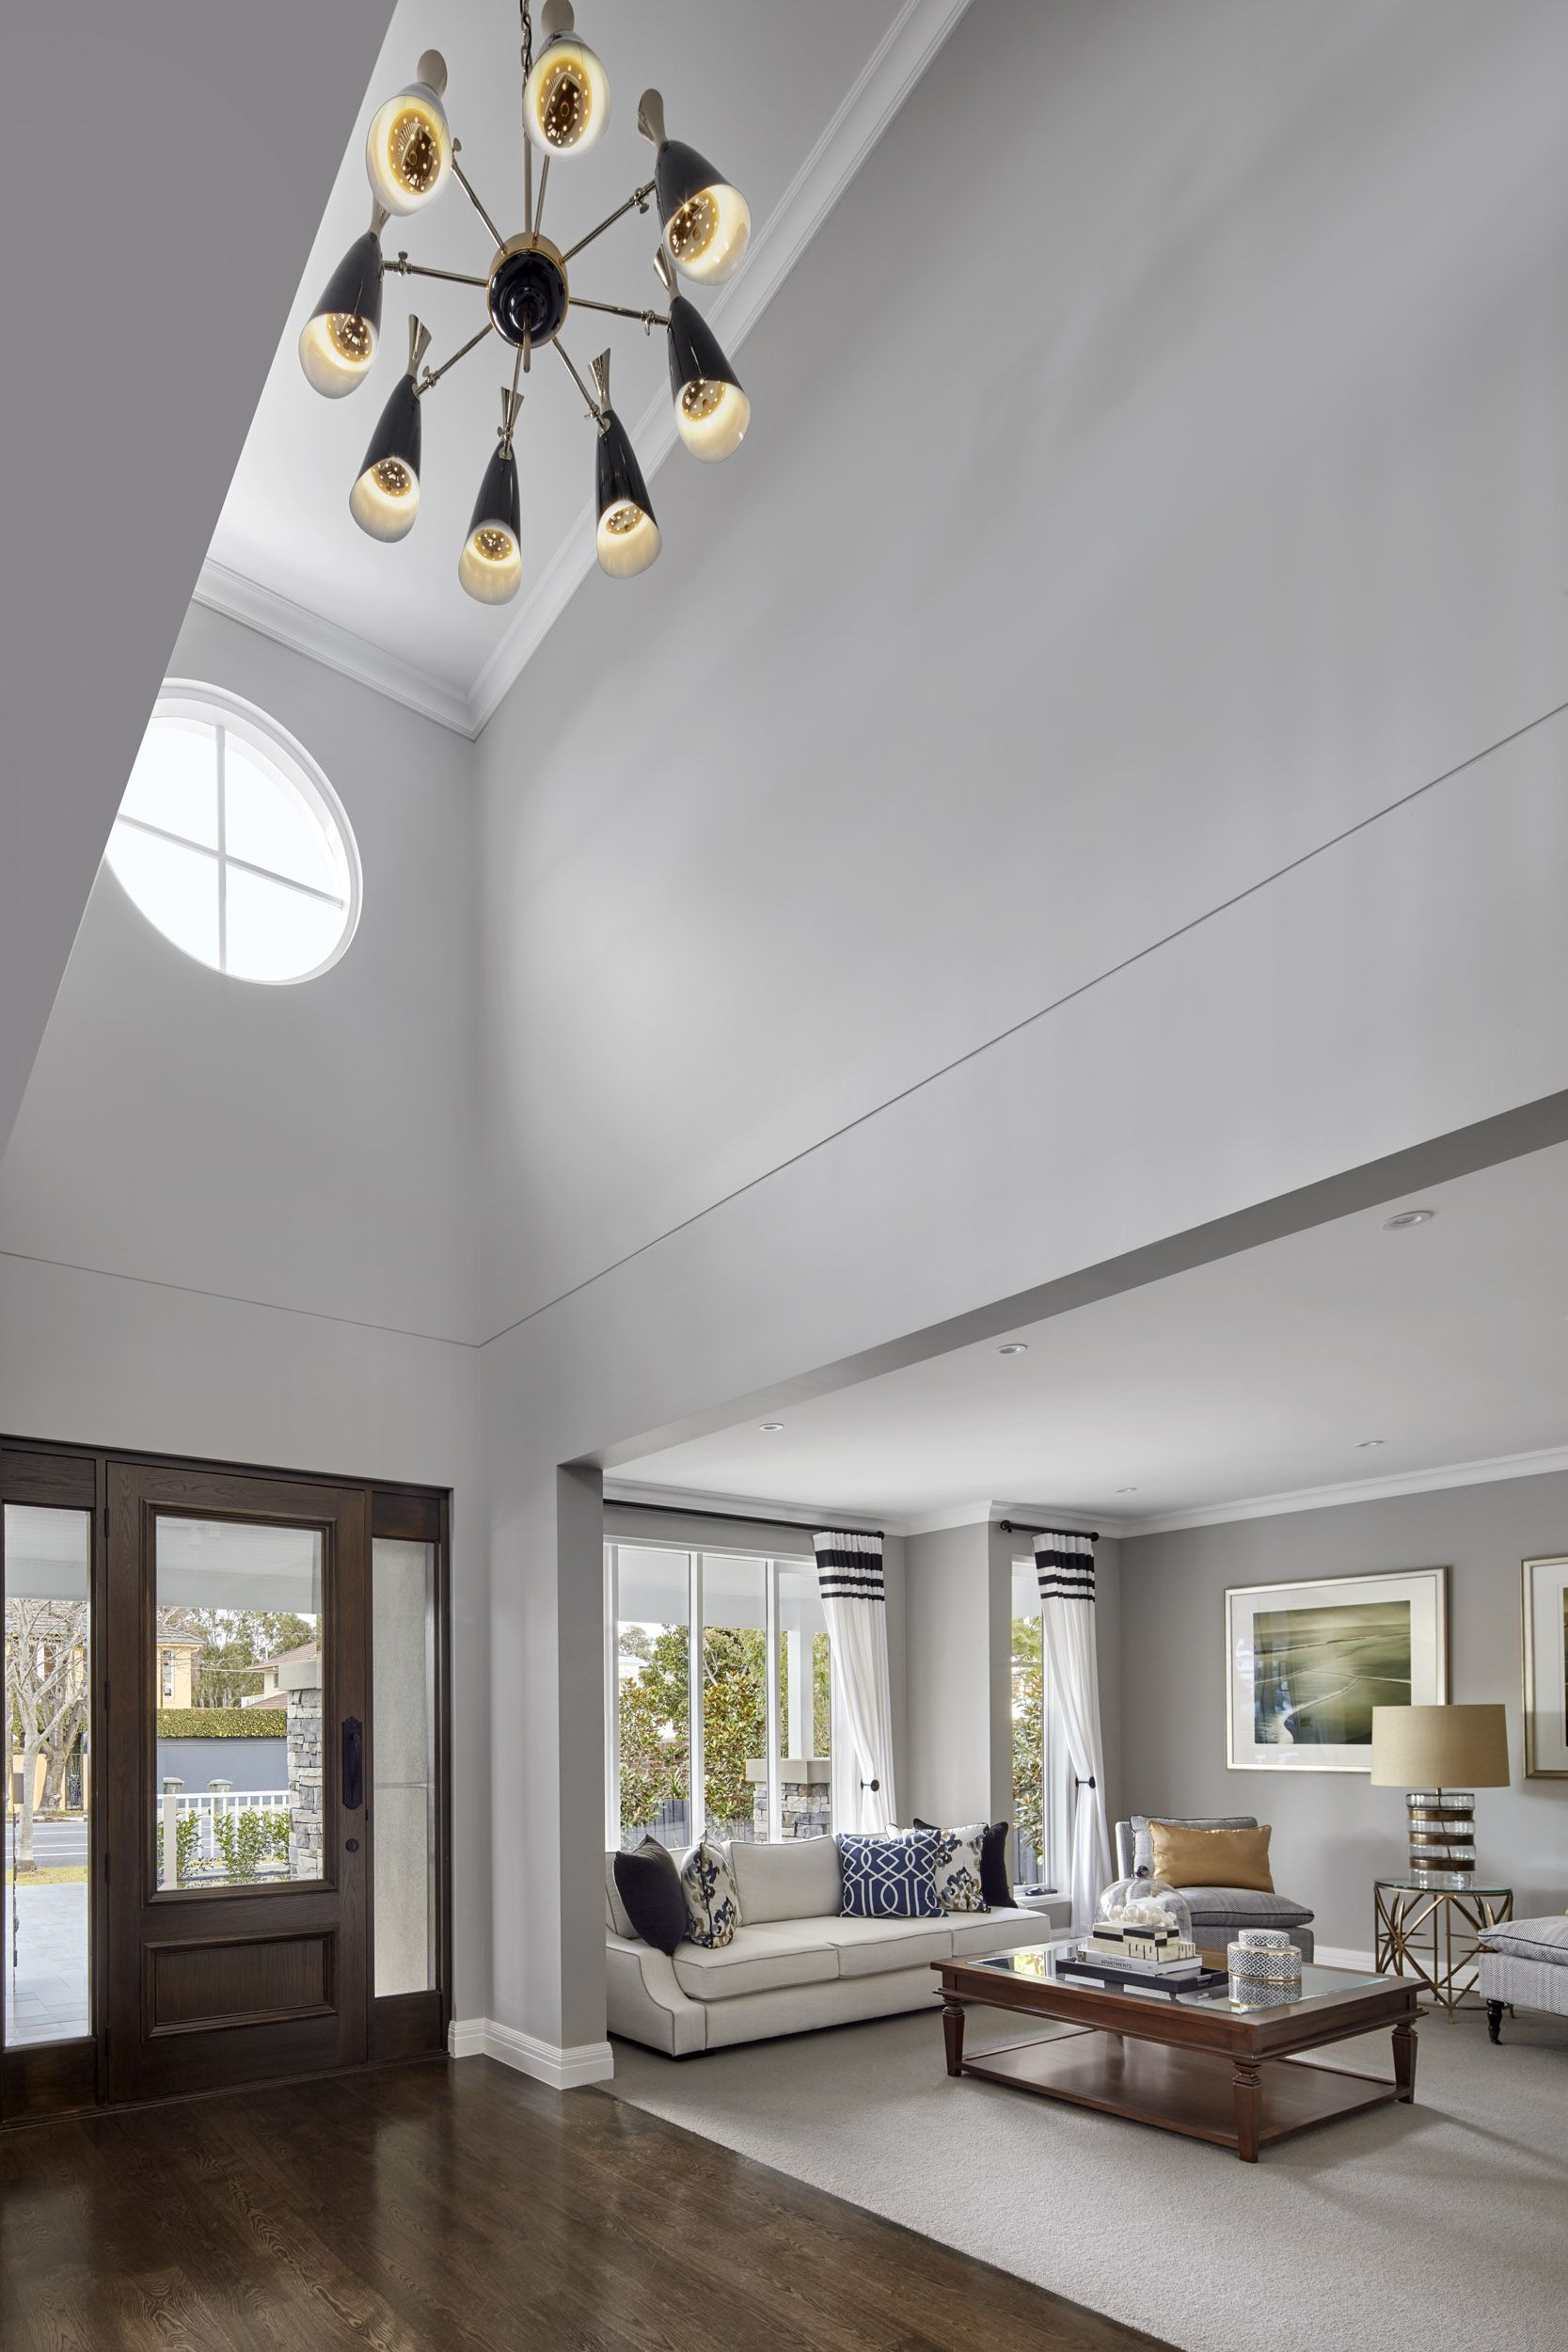 Entryway window ideas  pin by elisa ouconnor on dream house  pinterest  ceilings window